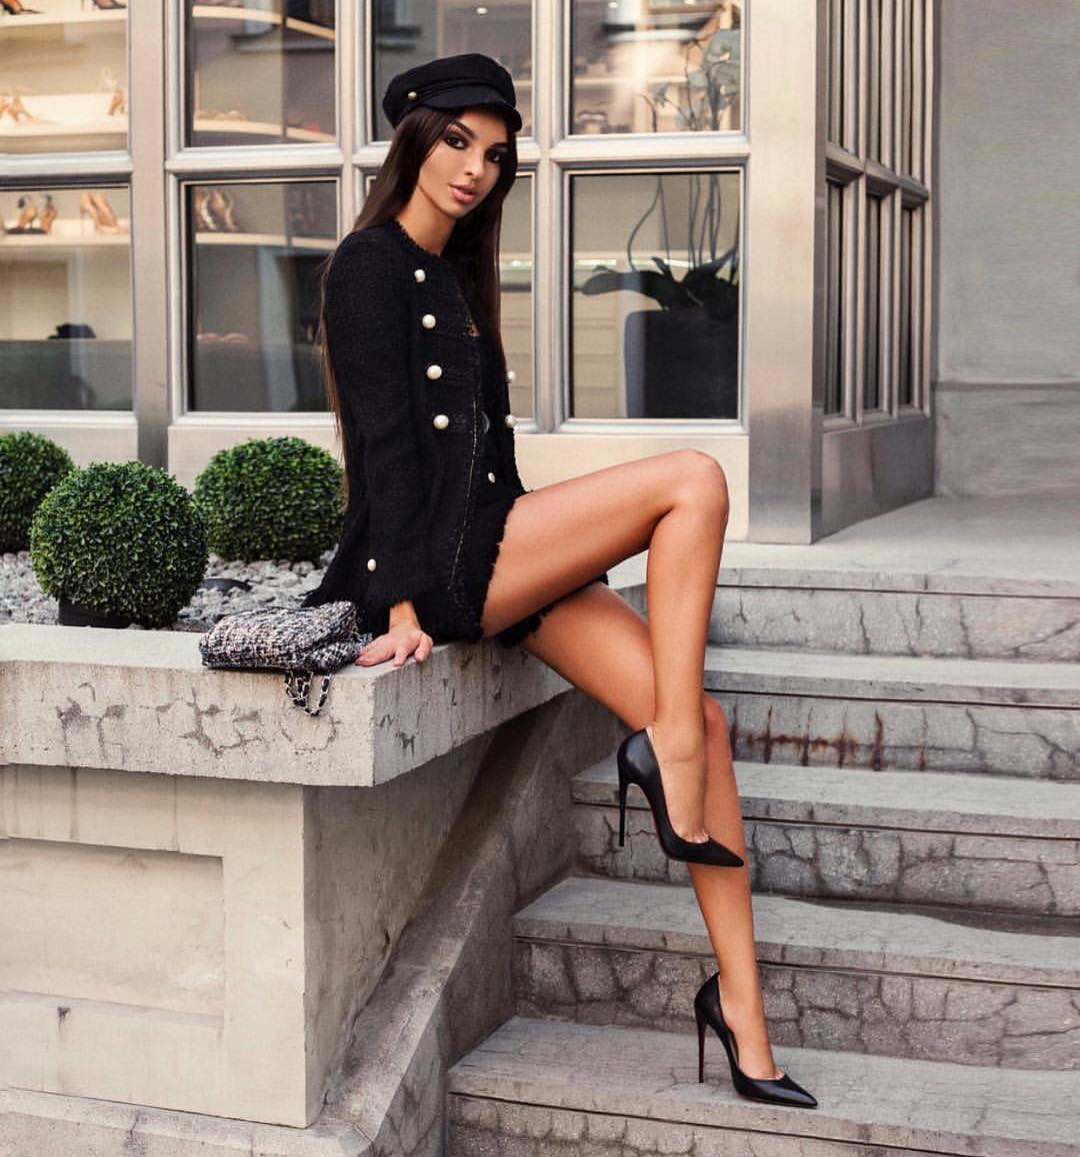 Tweed Blazer And Lace Dress: All Black OOTD For Fall 2019